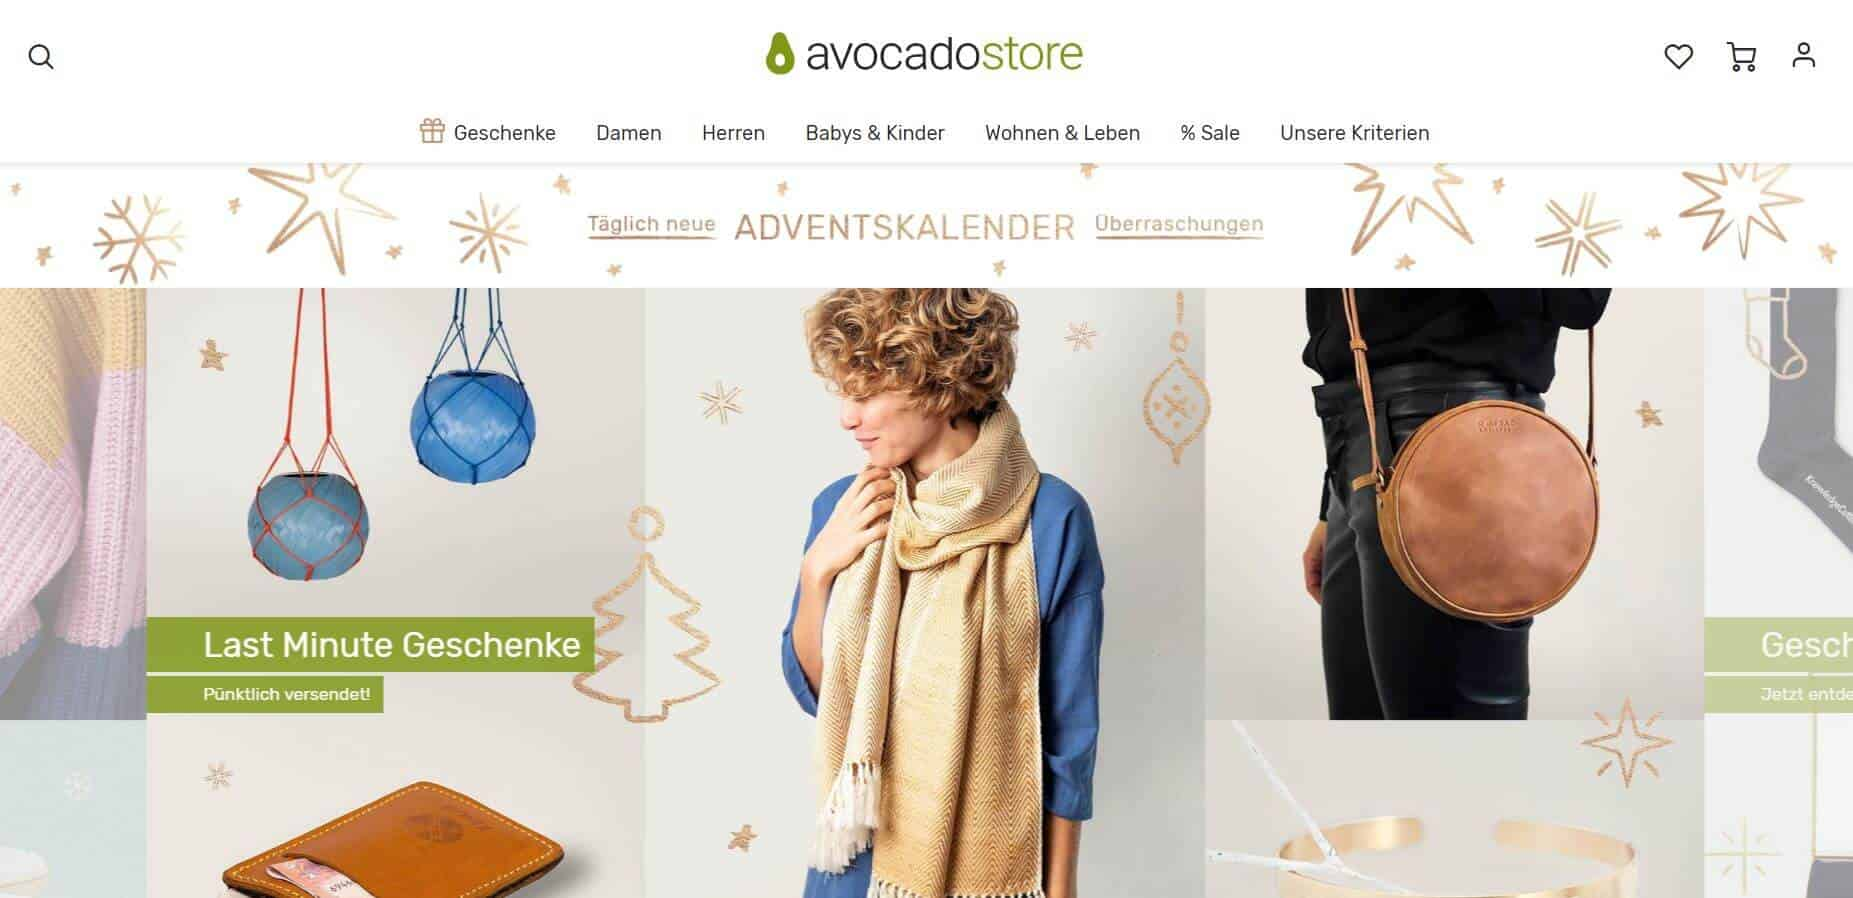 Avocadostore Screenshot